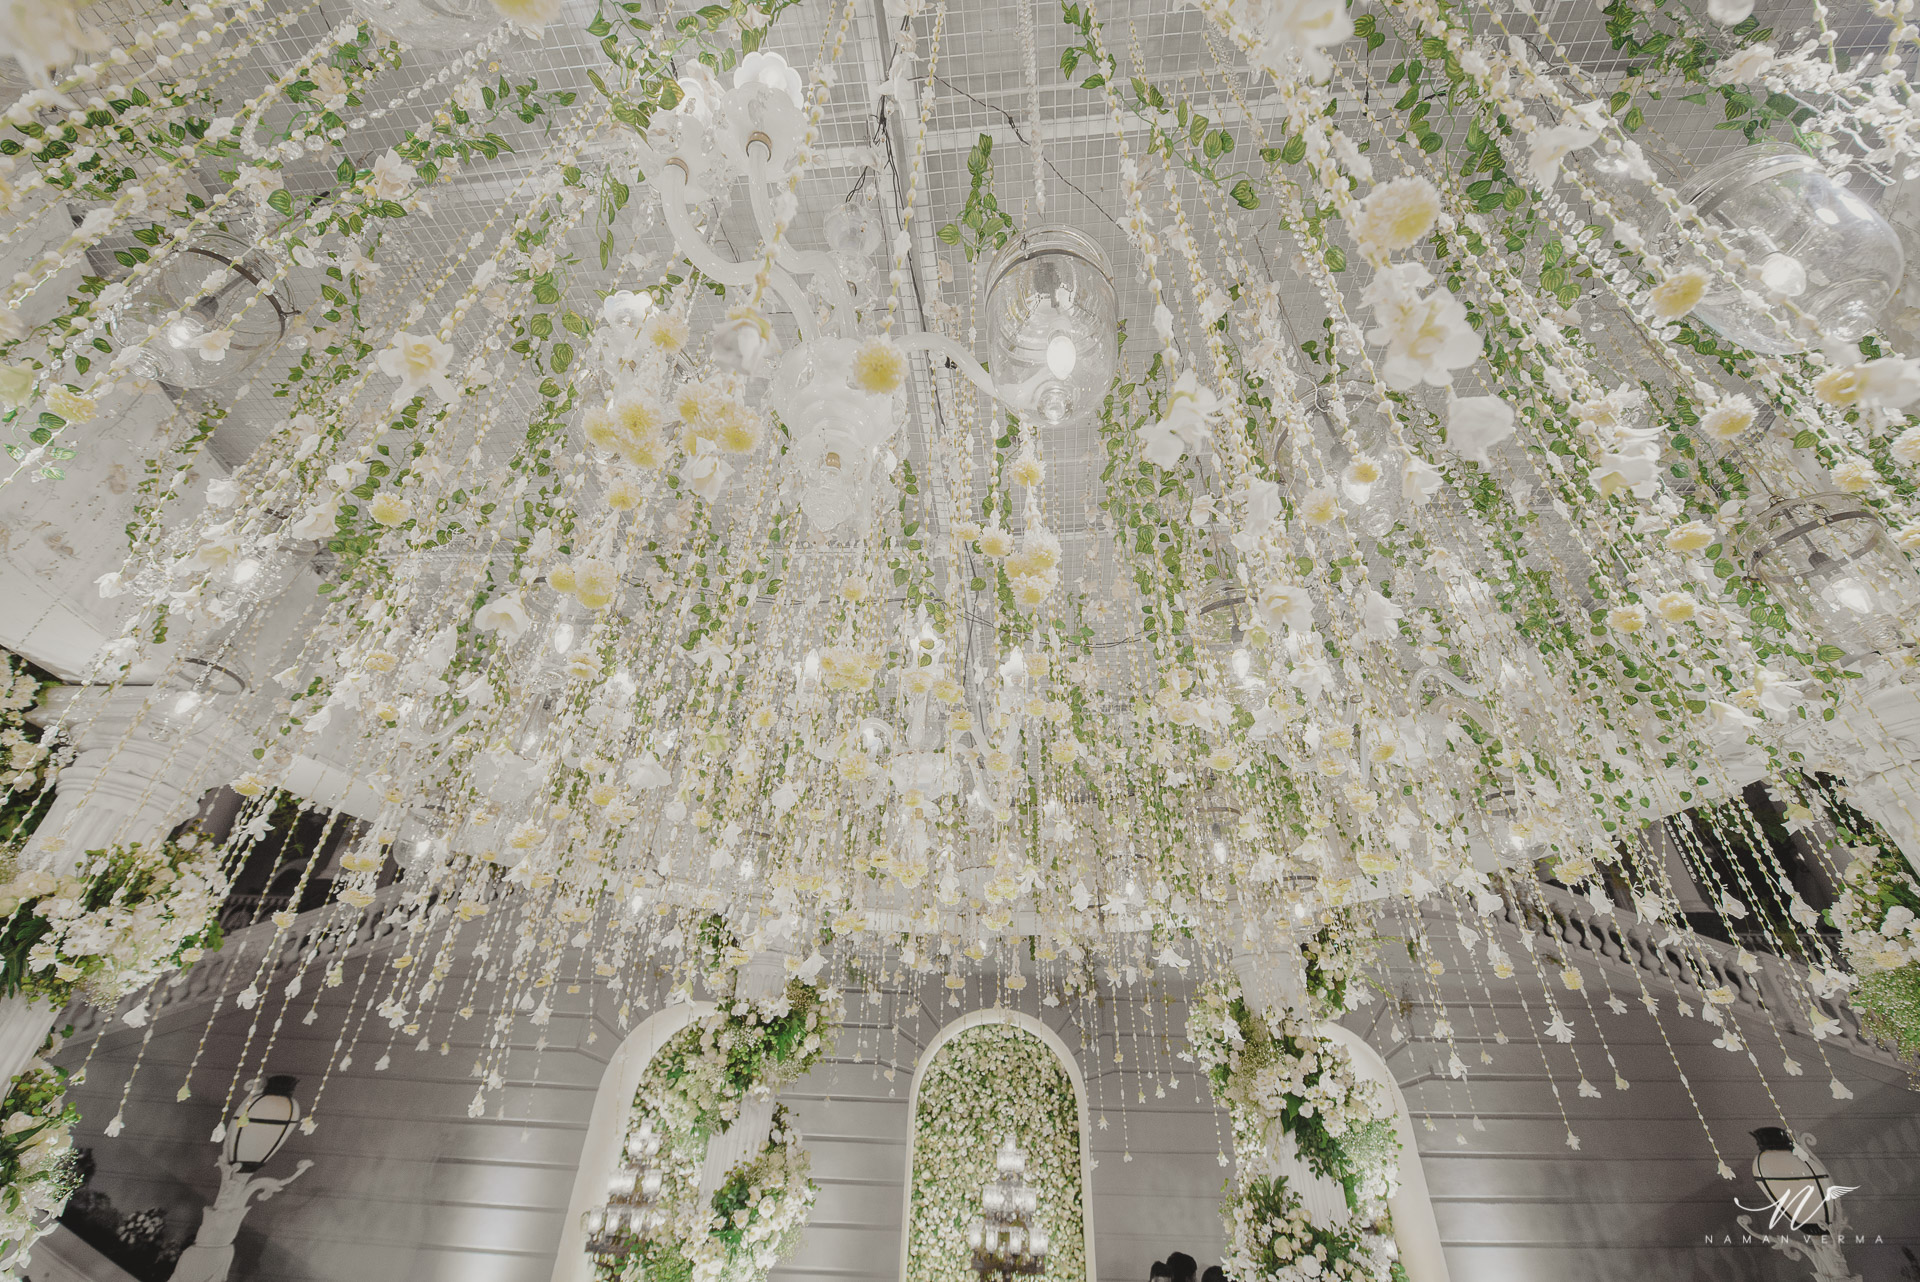 crystal wedding mandap decoration with foliage and white flowers